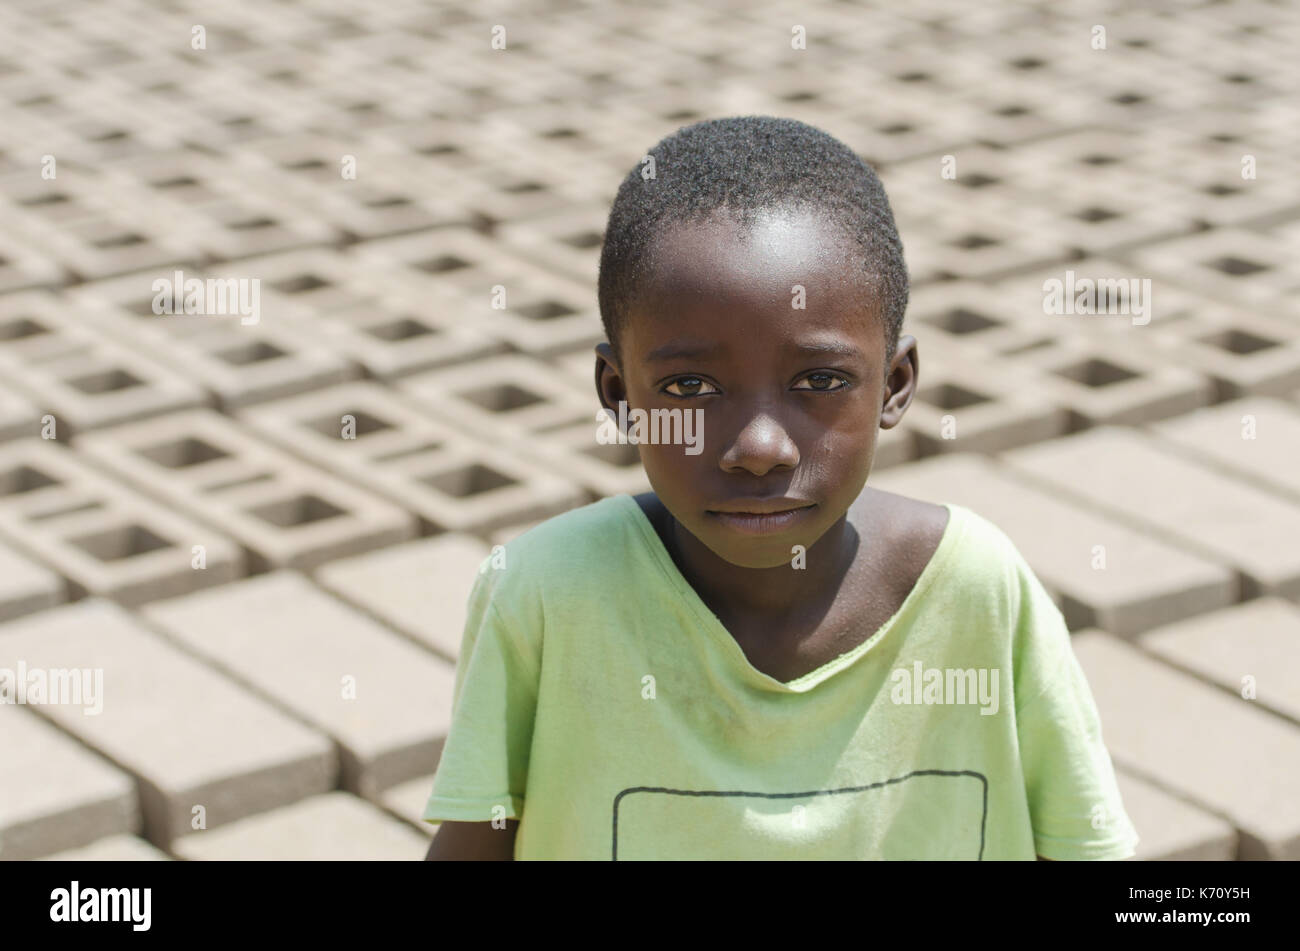 Child Exploitation symbol - African black boy with lots of bricks behind him - African Children Labour Labor - Stock Image